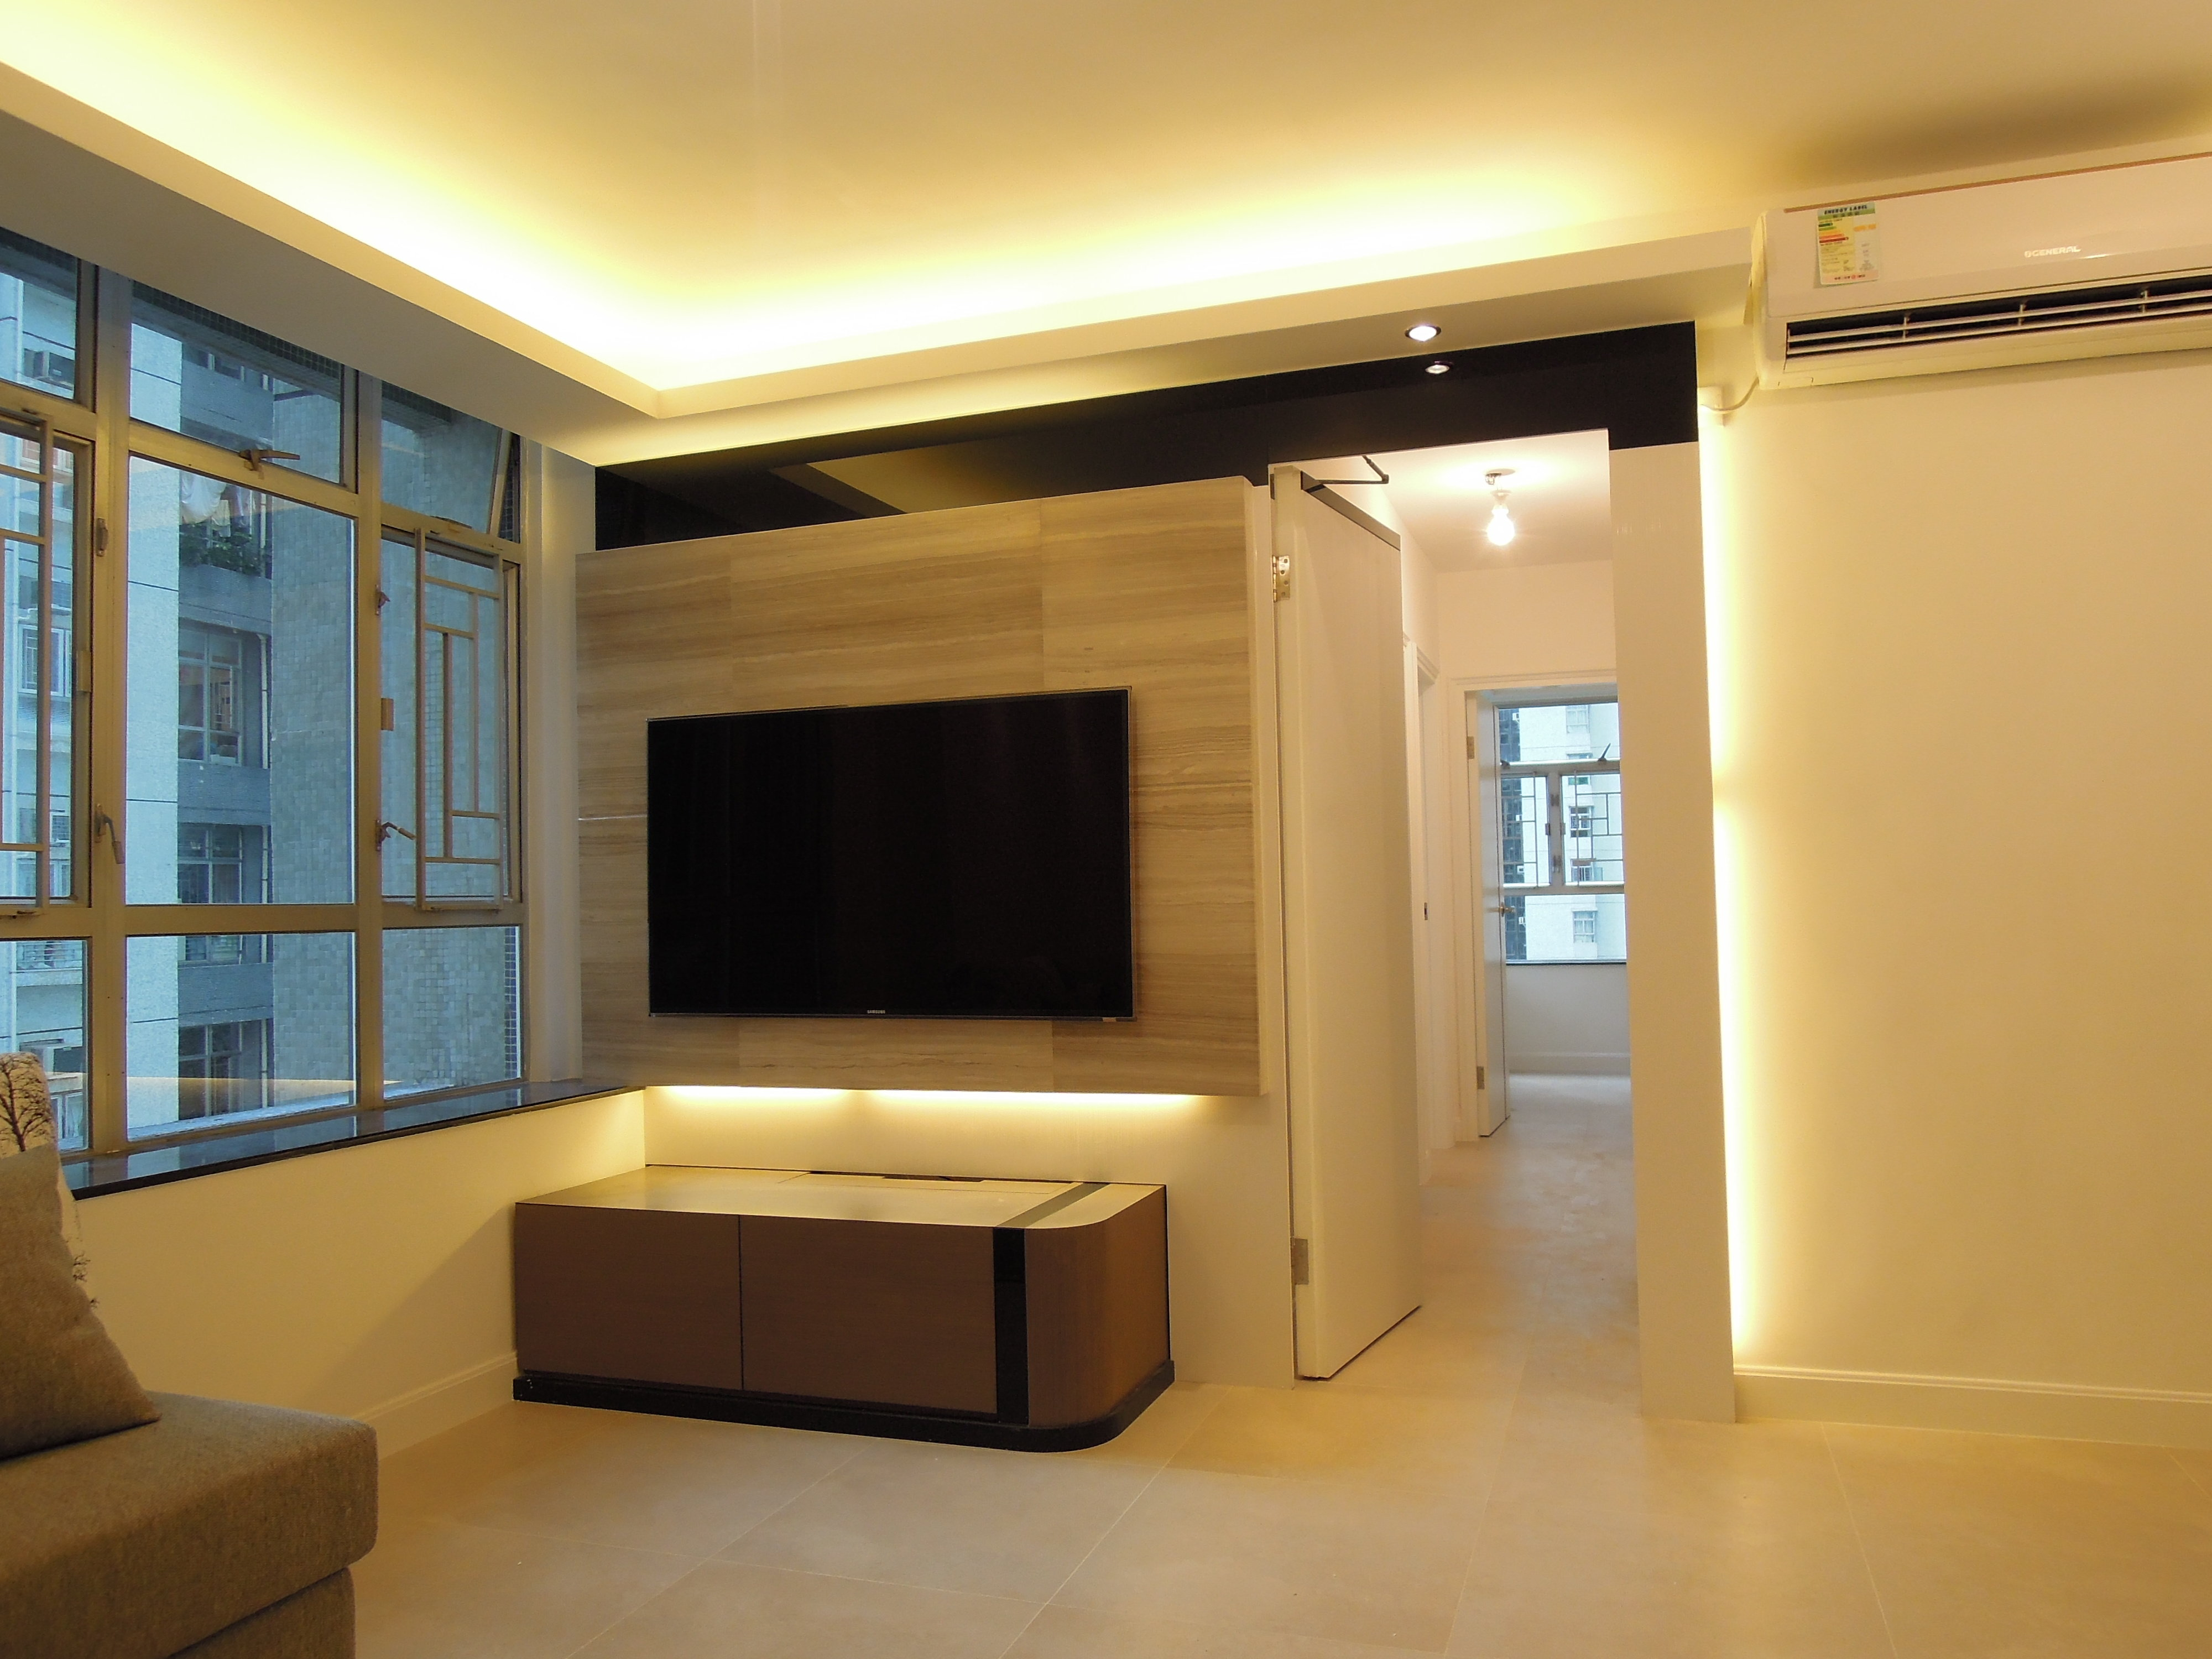 Apex design consultants limited for Design consultants limited